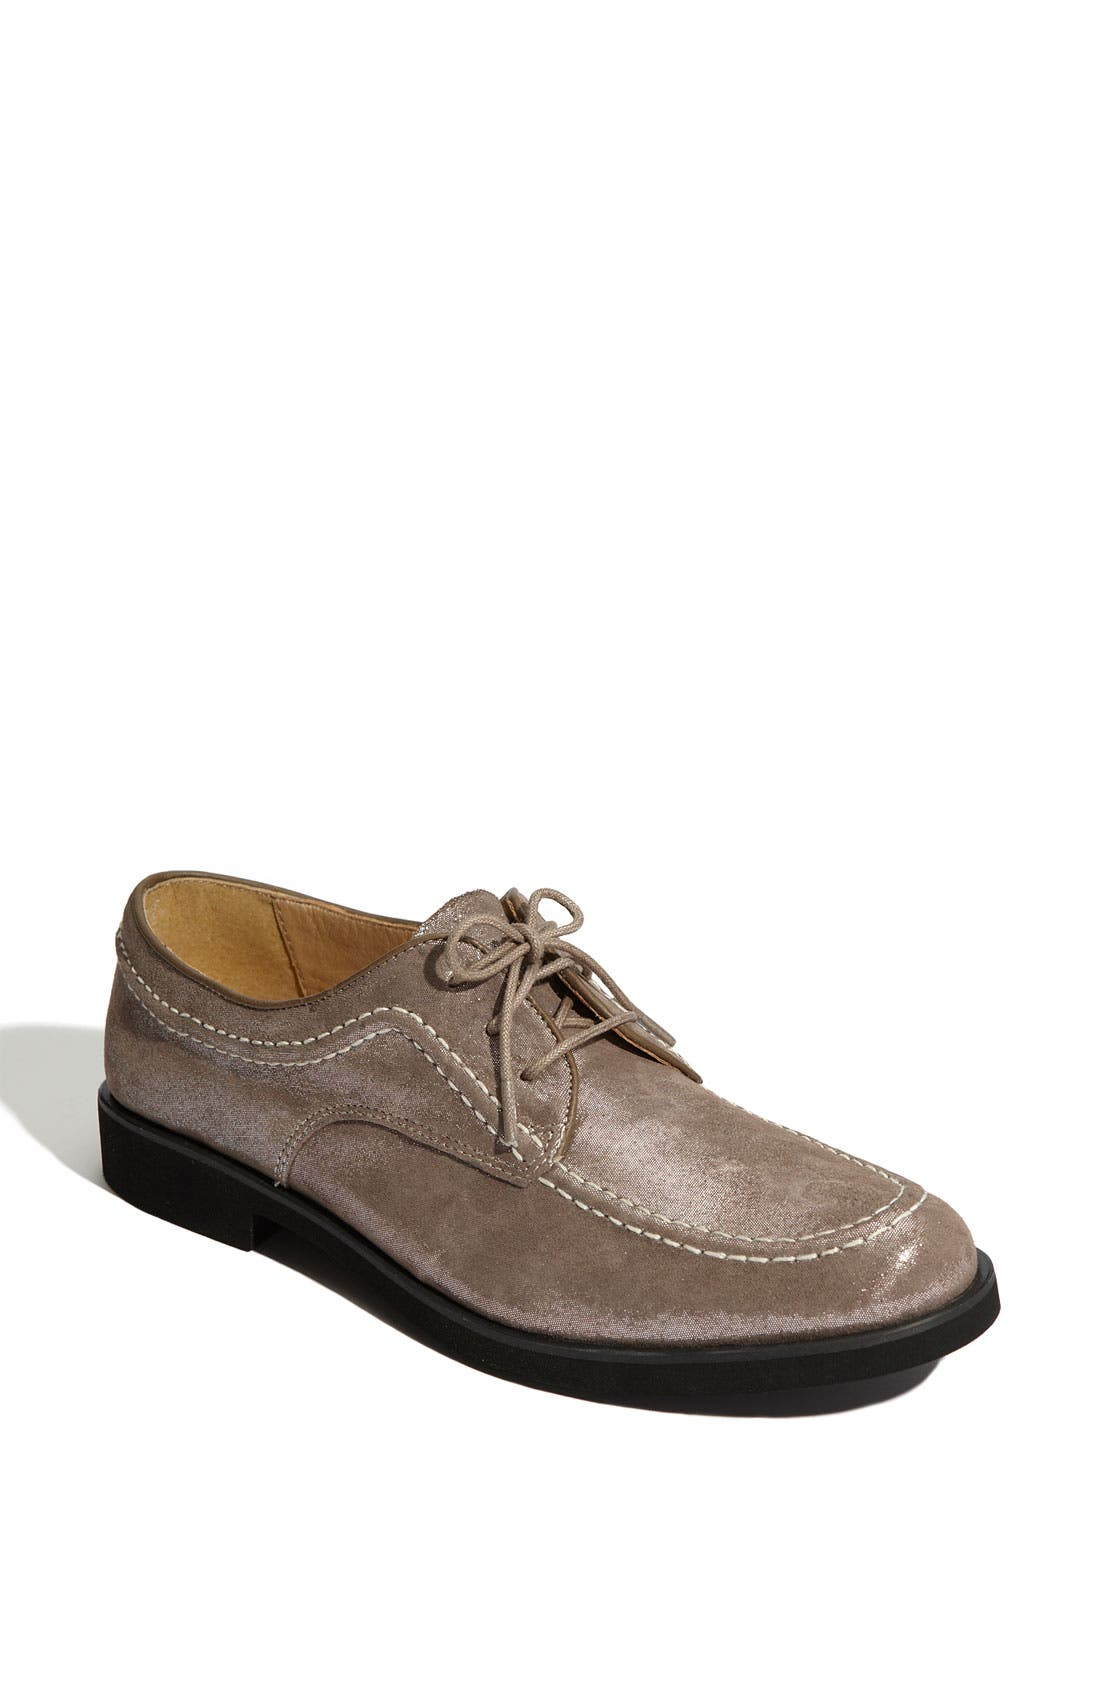 Alternate Image 1 Selected - Hush Puppies® 'Lifetime' Oxford